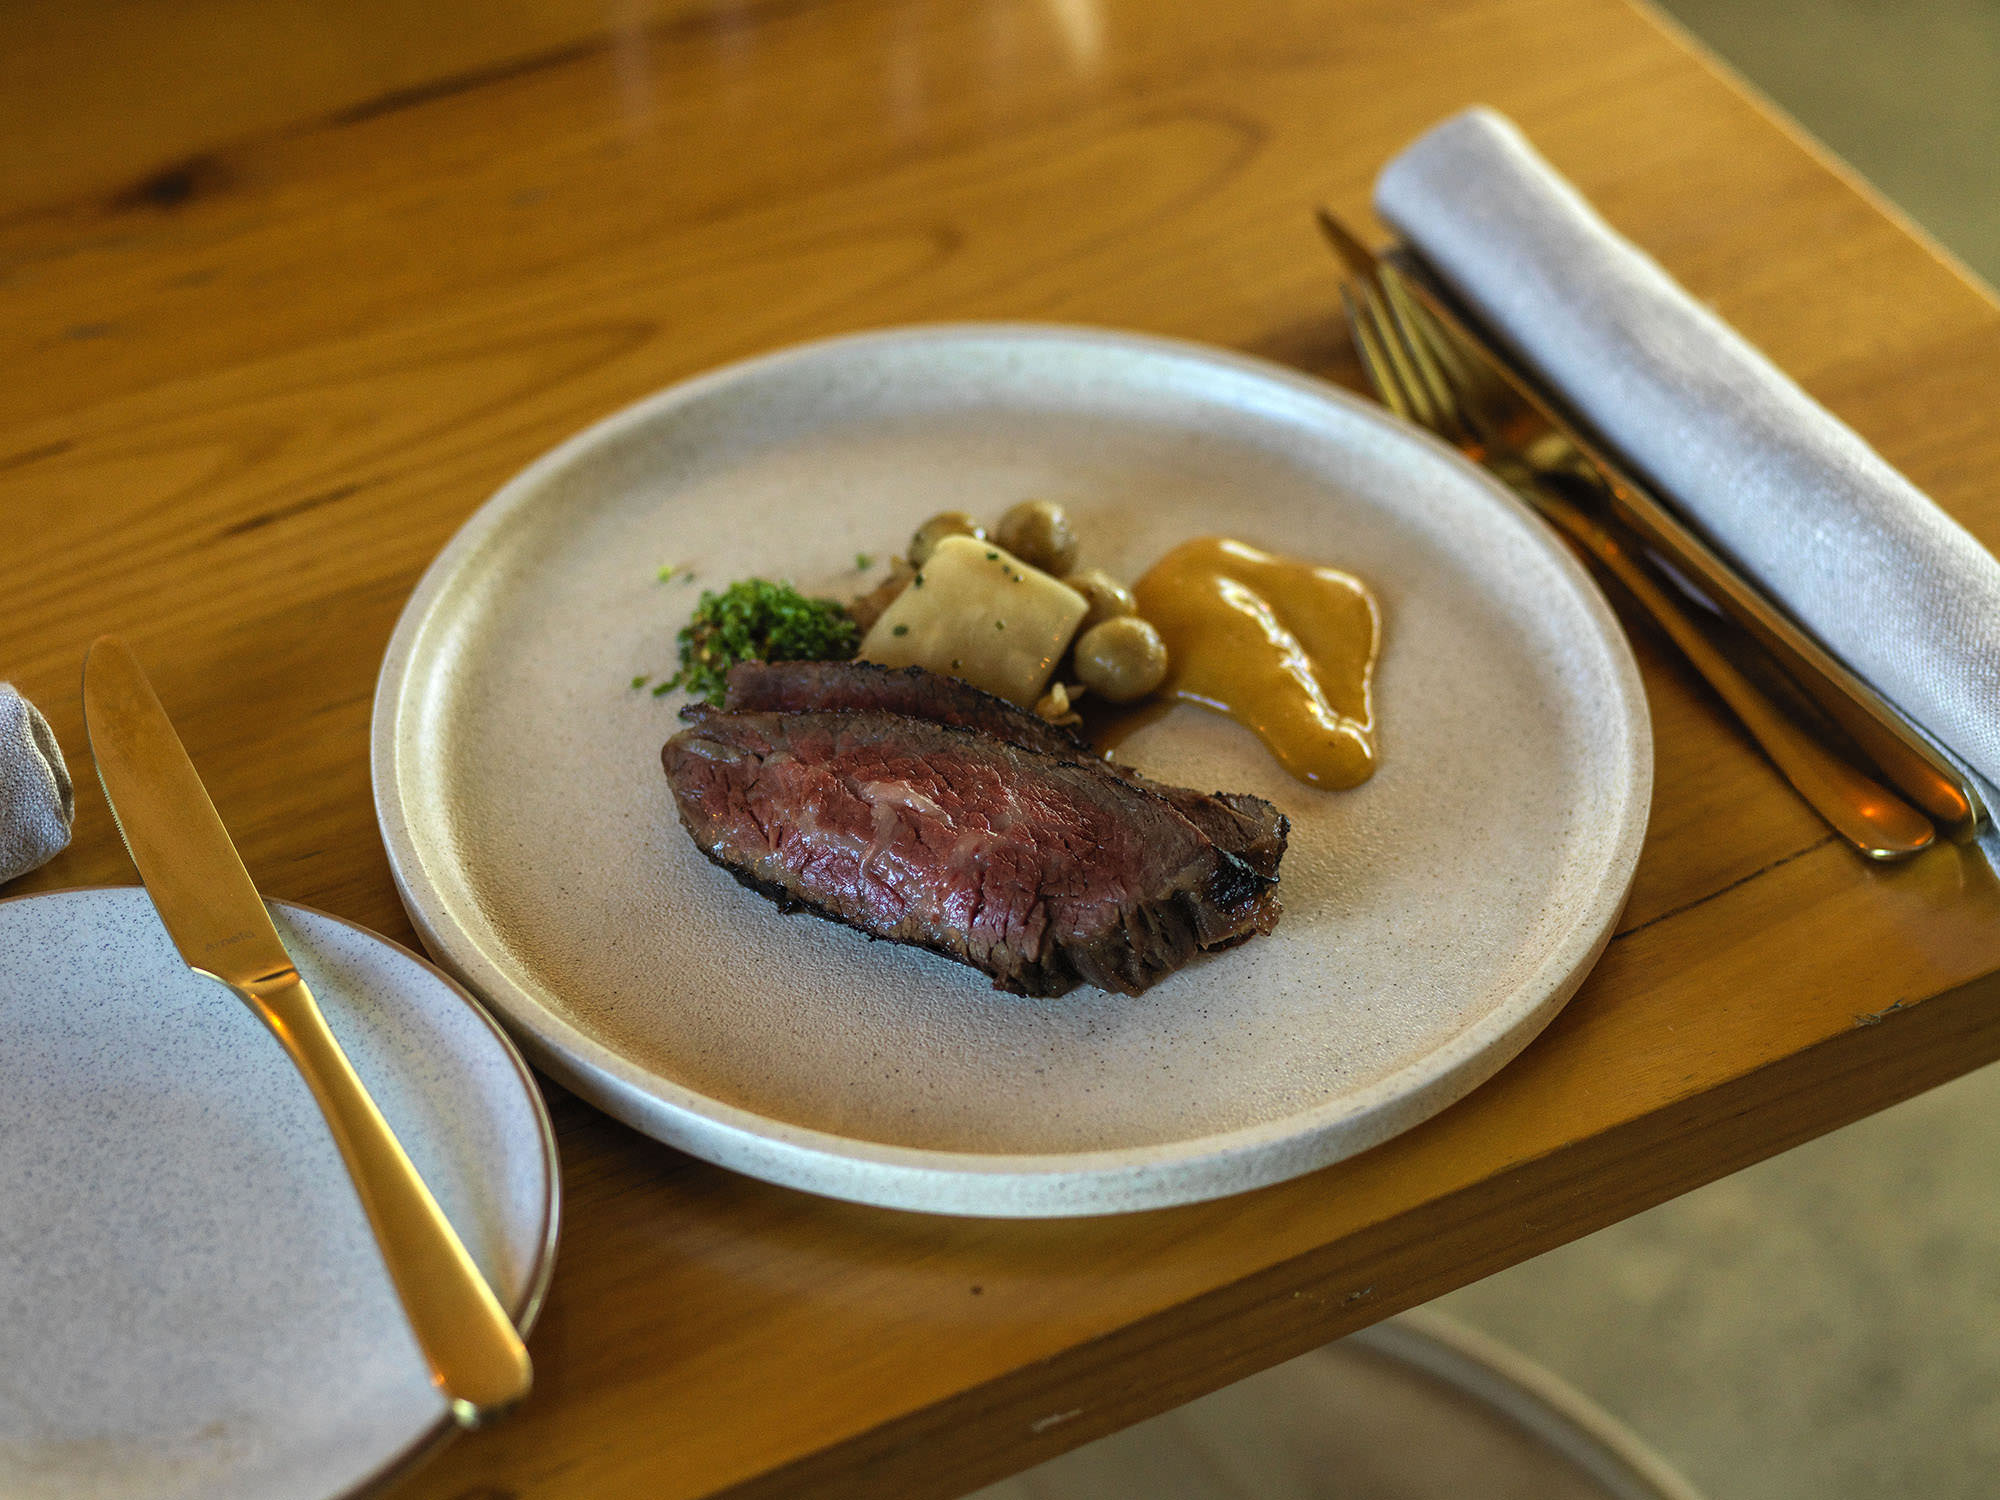 Wagyu tri-tip with beef fat dumplings. Yes, you read that right.